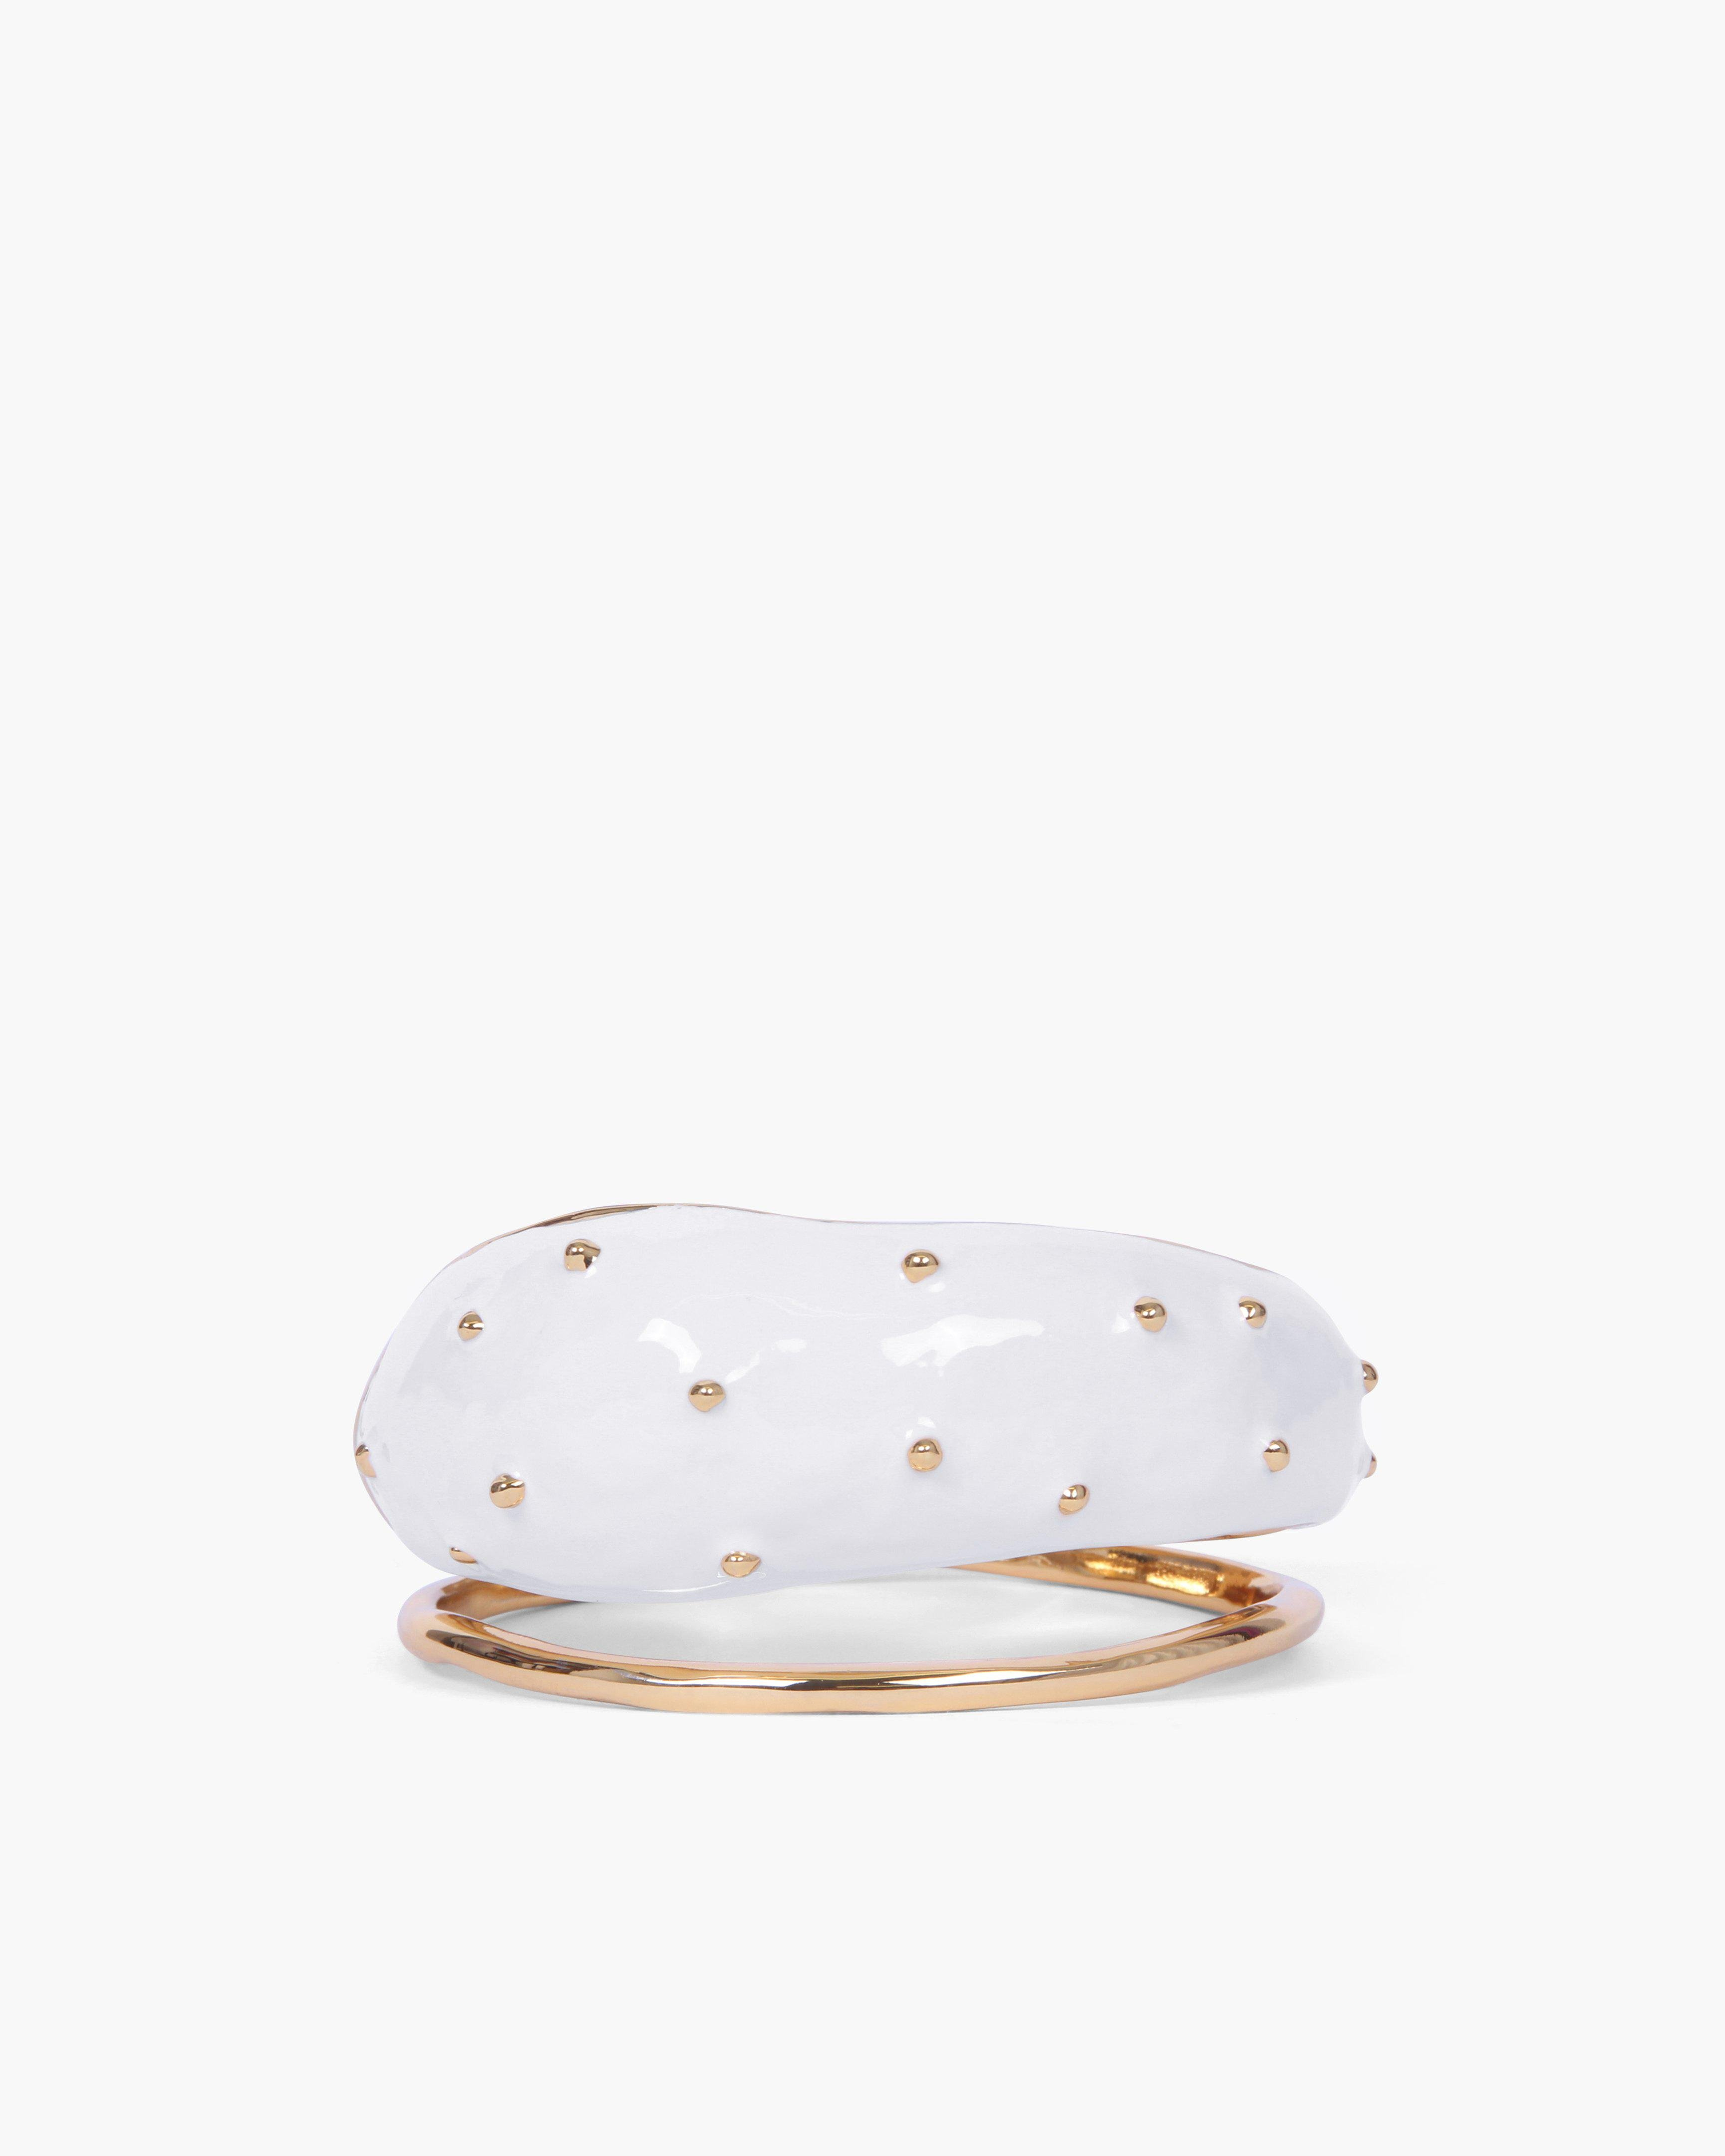 Eden Cuff Gold Plated with Ivory Enamel Boule - SPECIAL PRICE